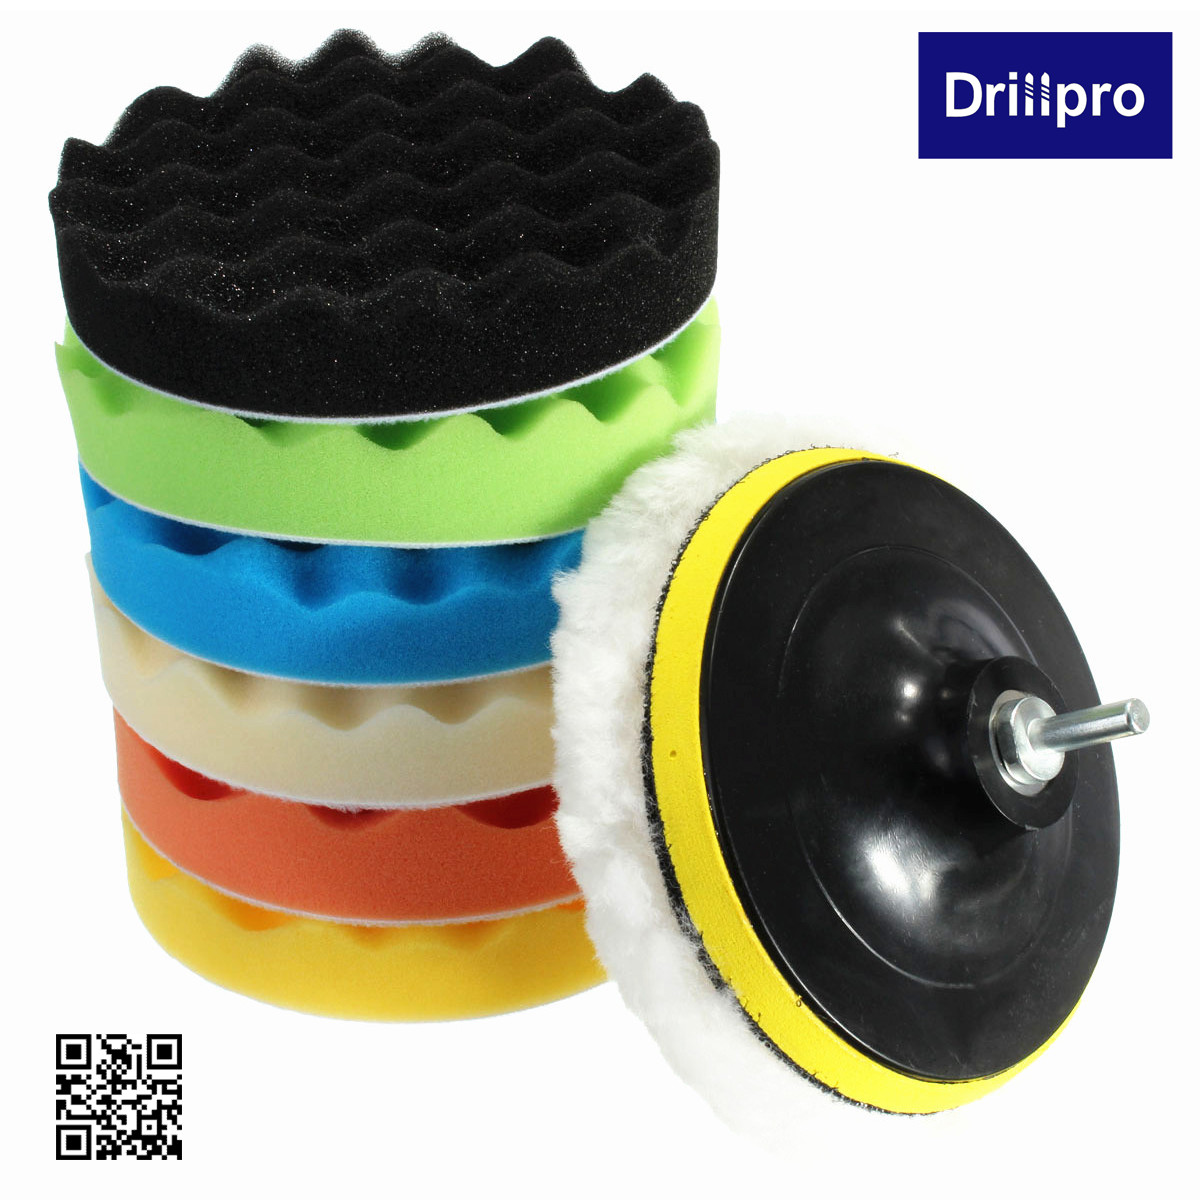 8PCS 6'' Auto Car Compound Sponge Polishing Waxing Buffing Pads Set Kit with Drill Adapter